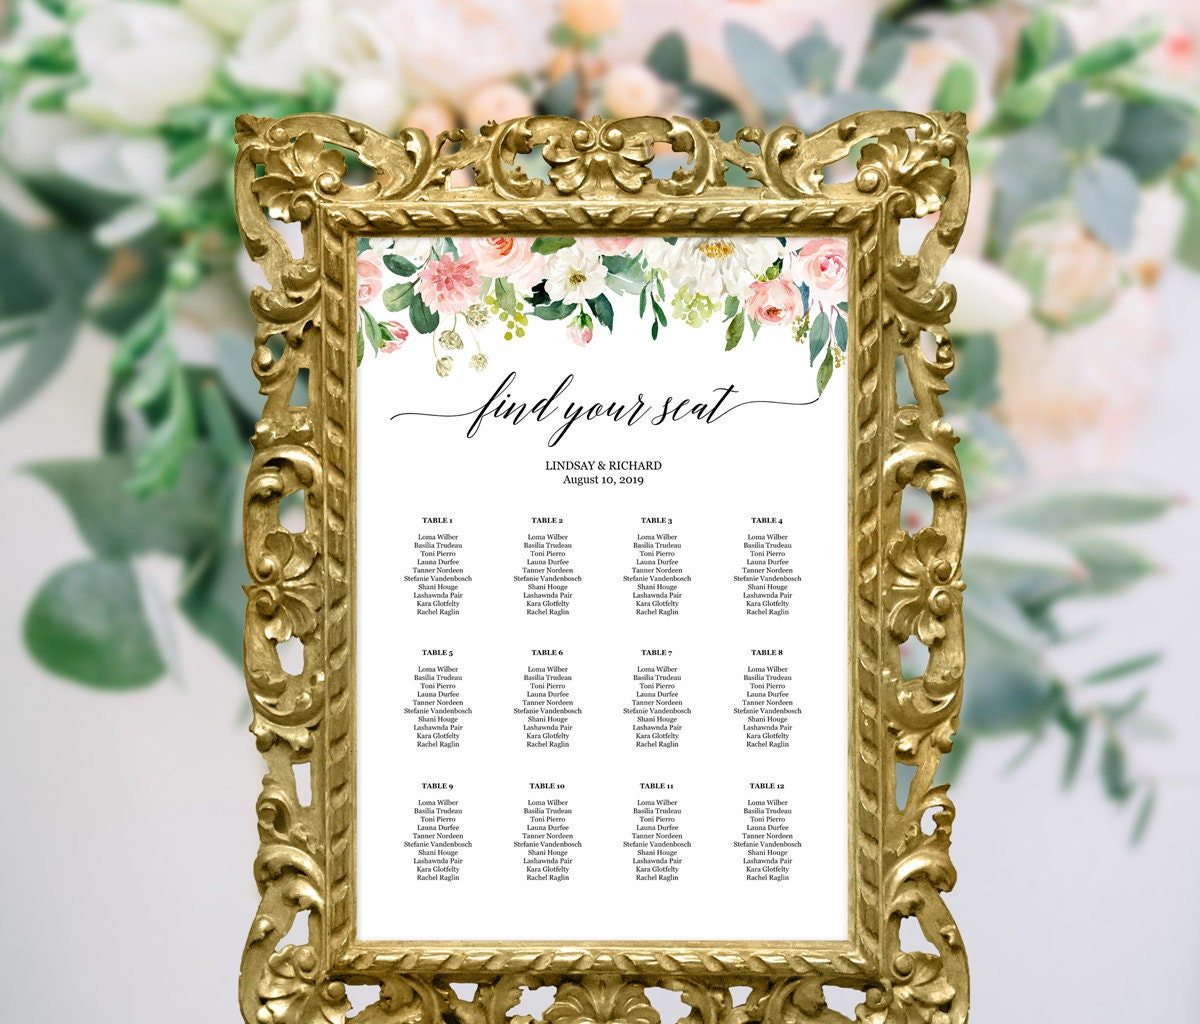 Floral wedding seating chart template Wedding reception | Etsy